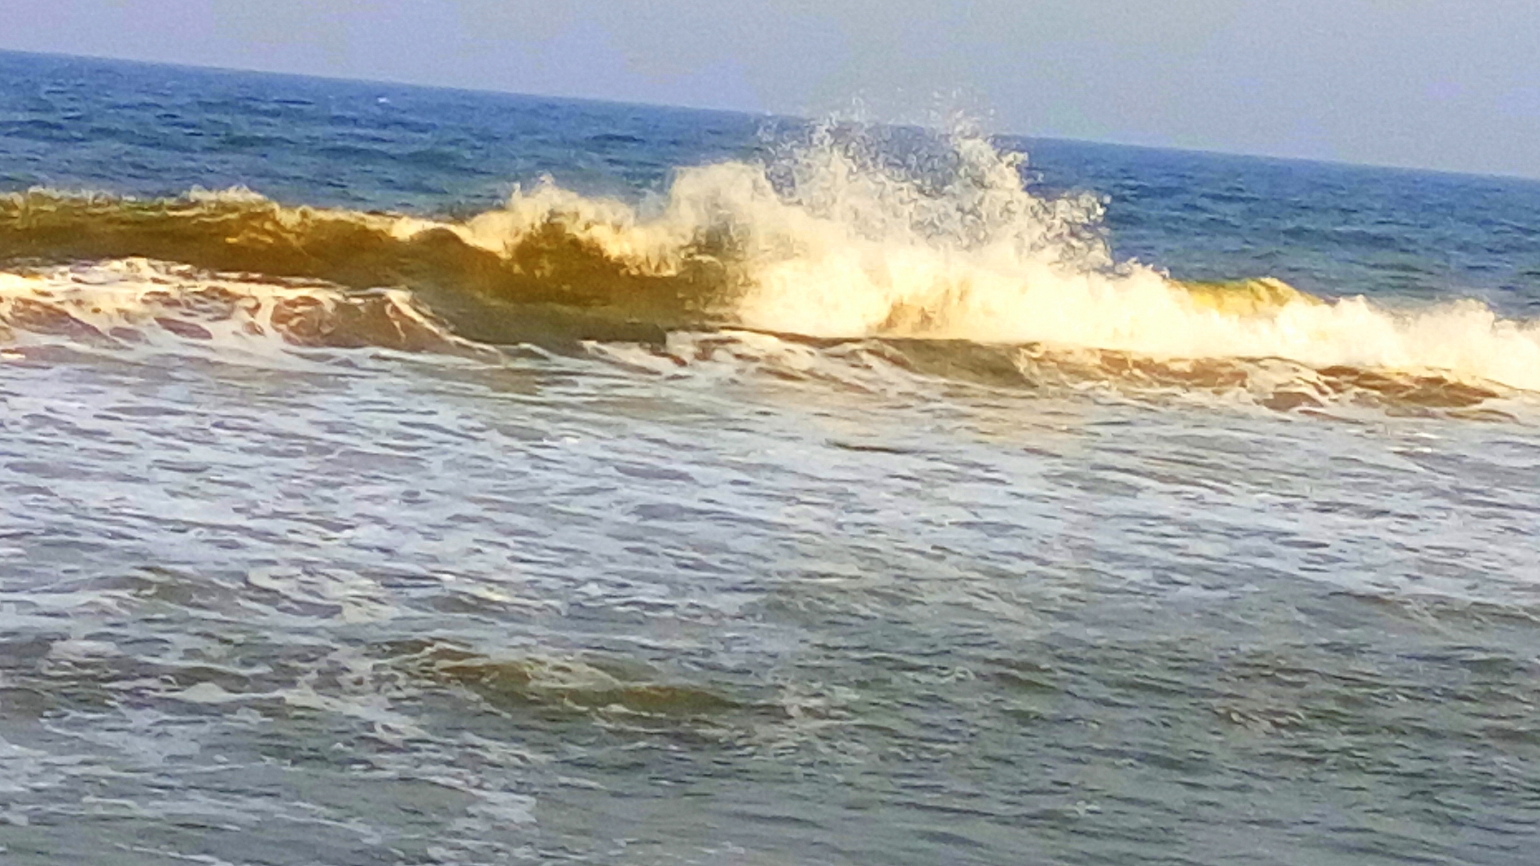 Dancing Water - A picture of dancing waves of the sea